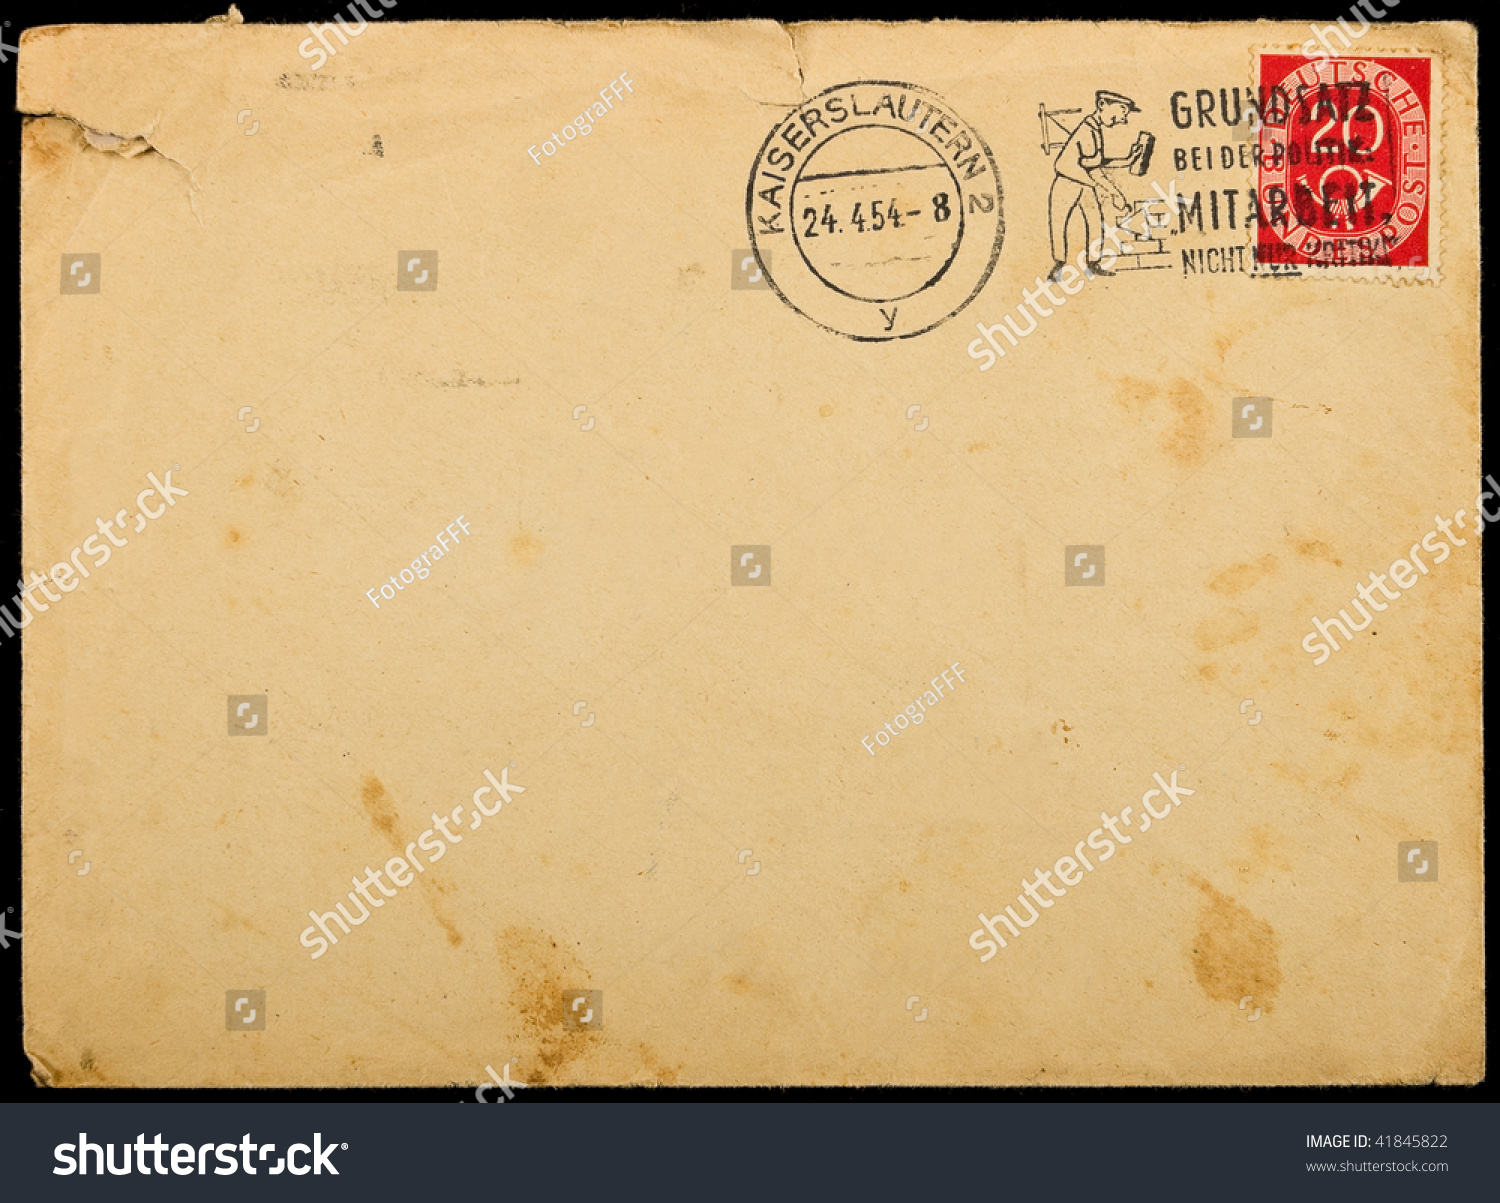 Enveloppe Vintage Vintage Used Envelope With Postage Stamps Stock Photo